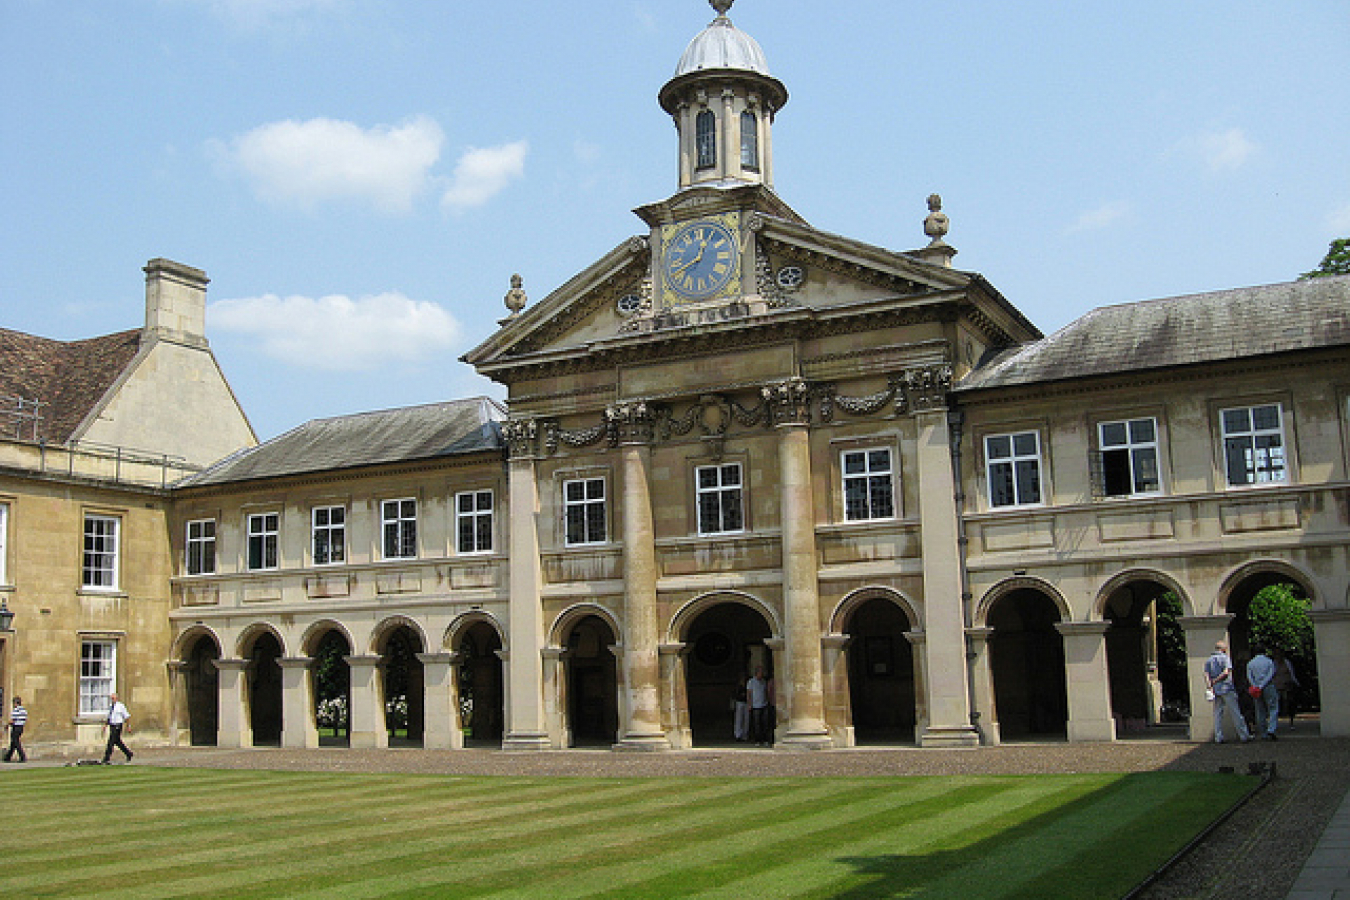 Emmanuel college, Cambridge University